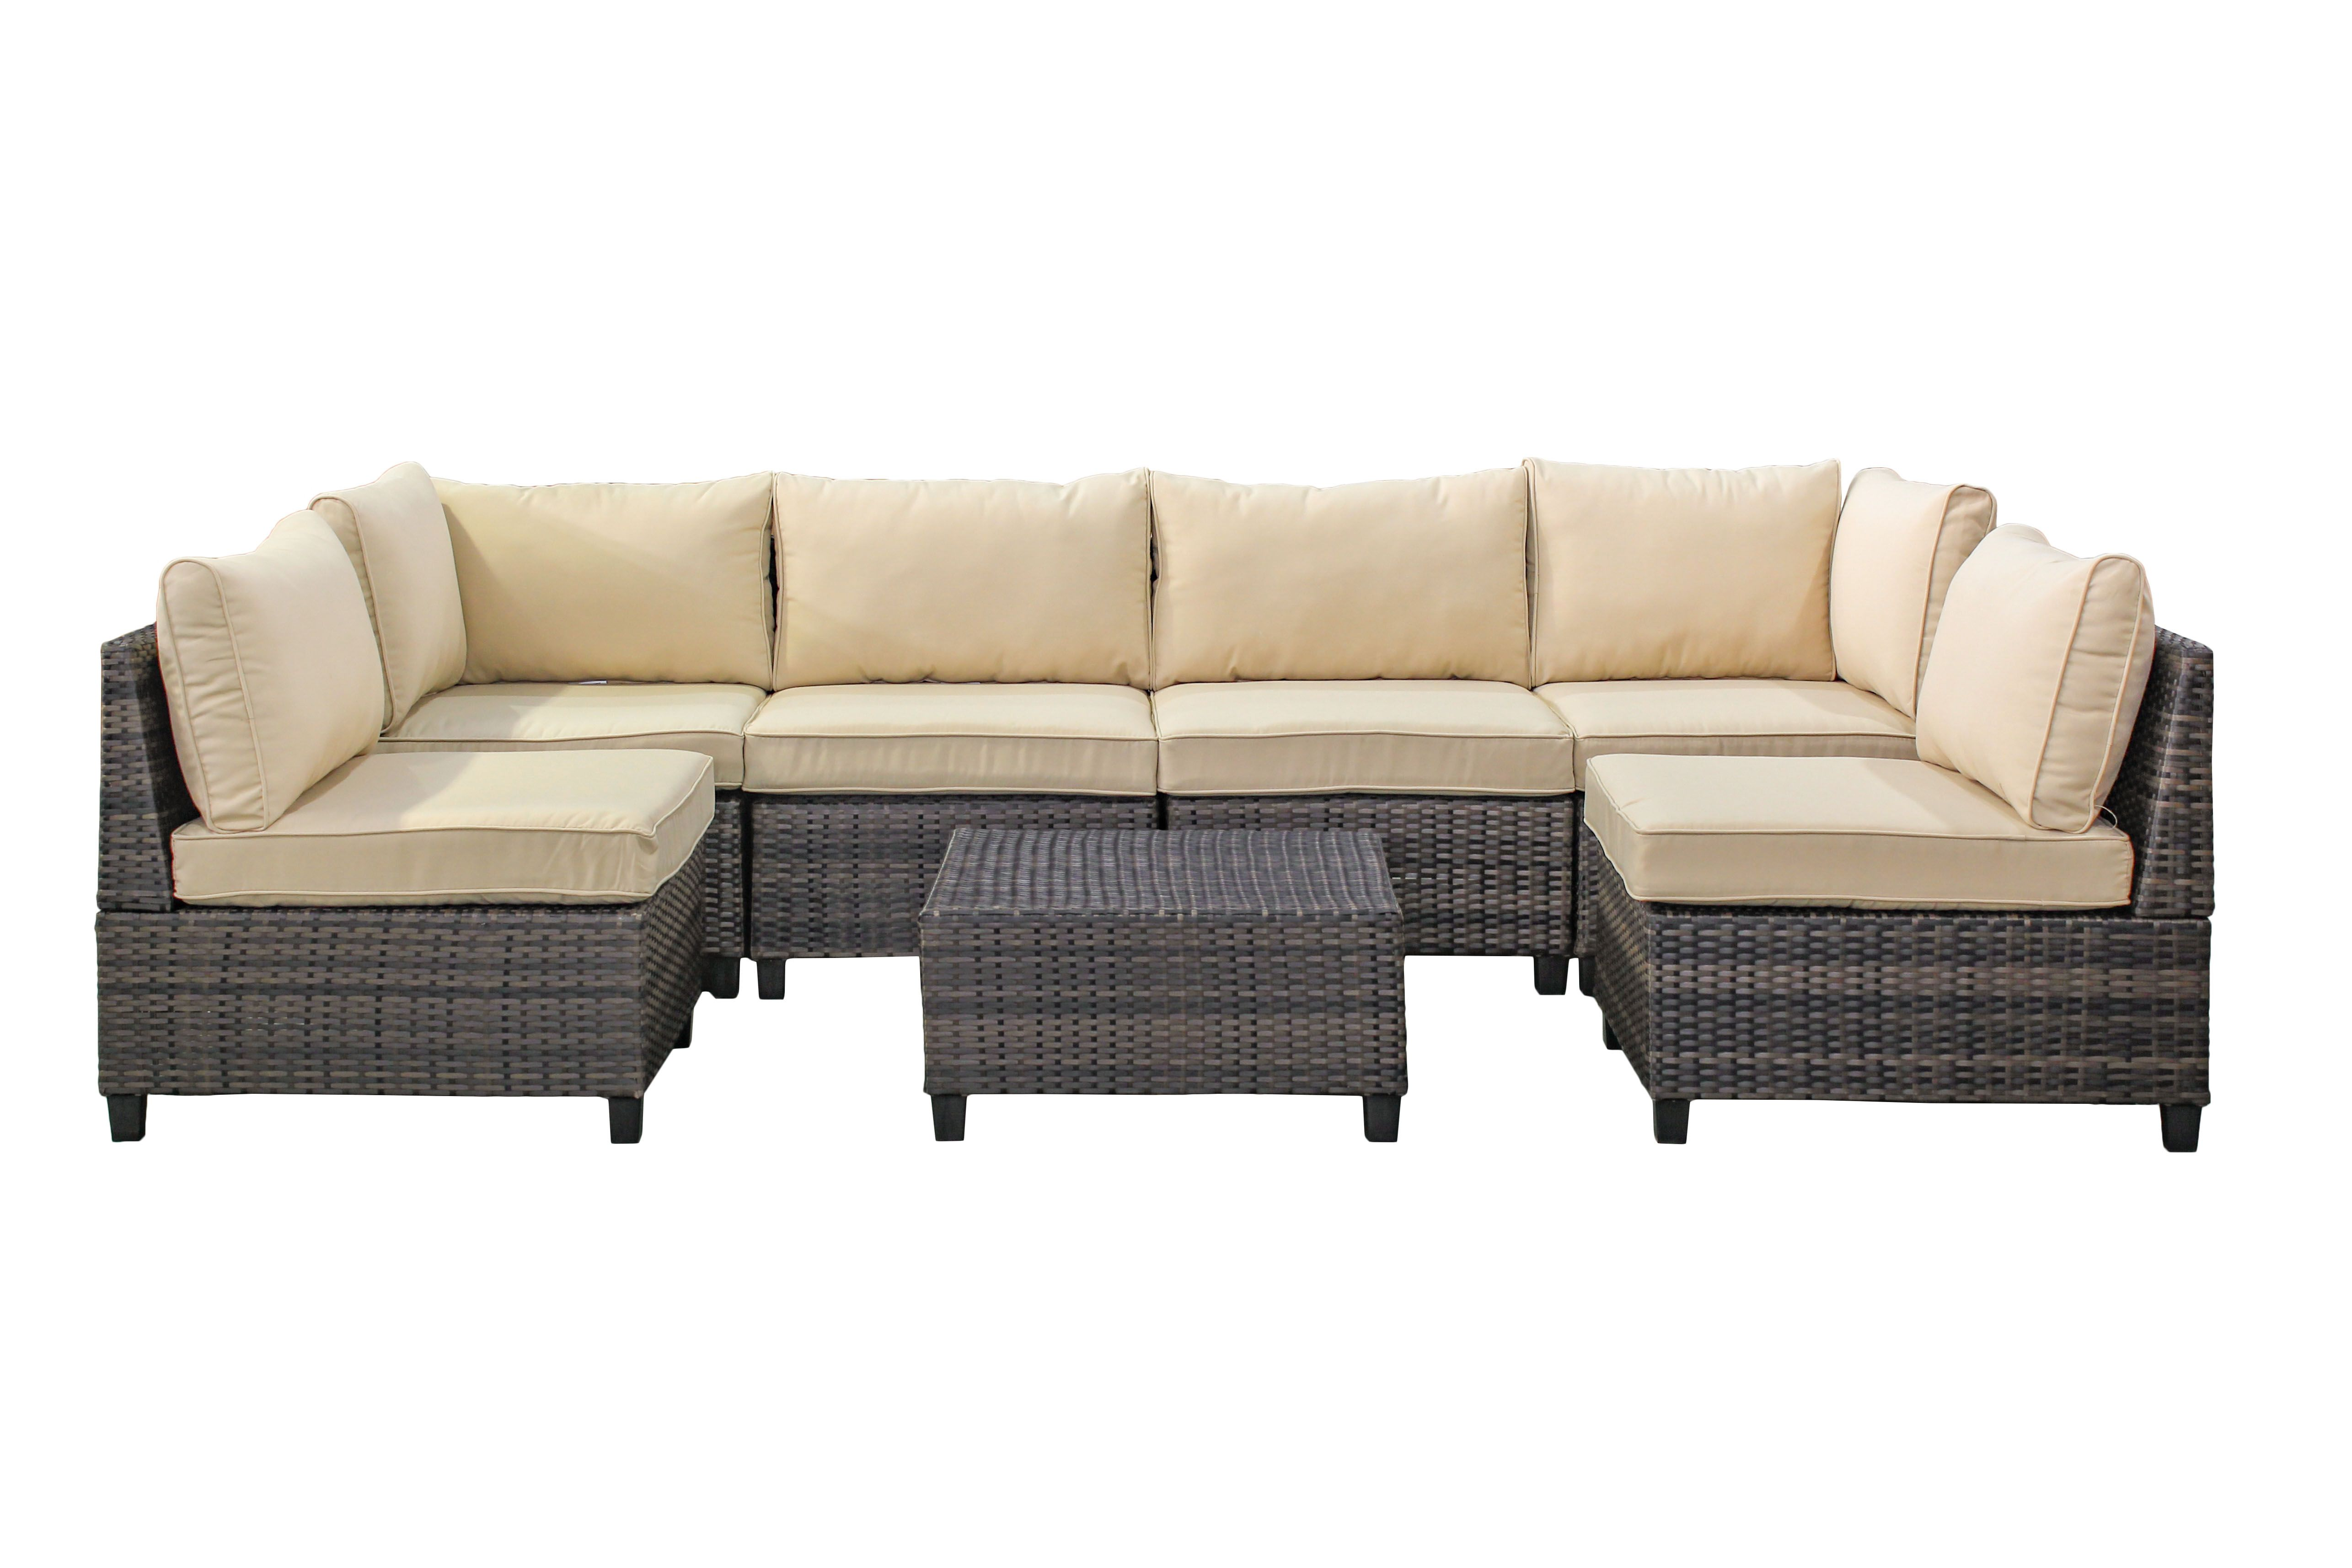 Download Wallpaper Patio Furniture For Sale Tampa Bay